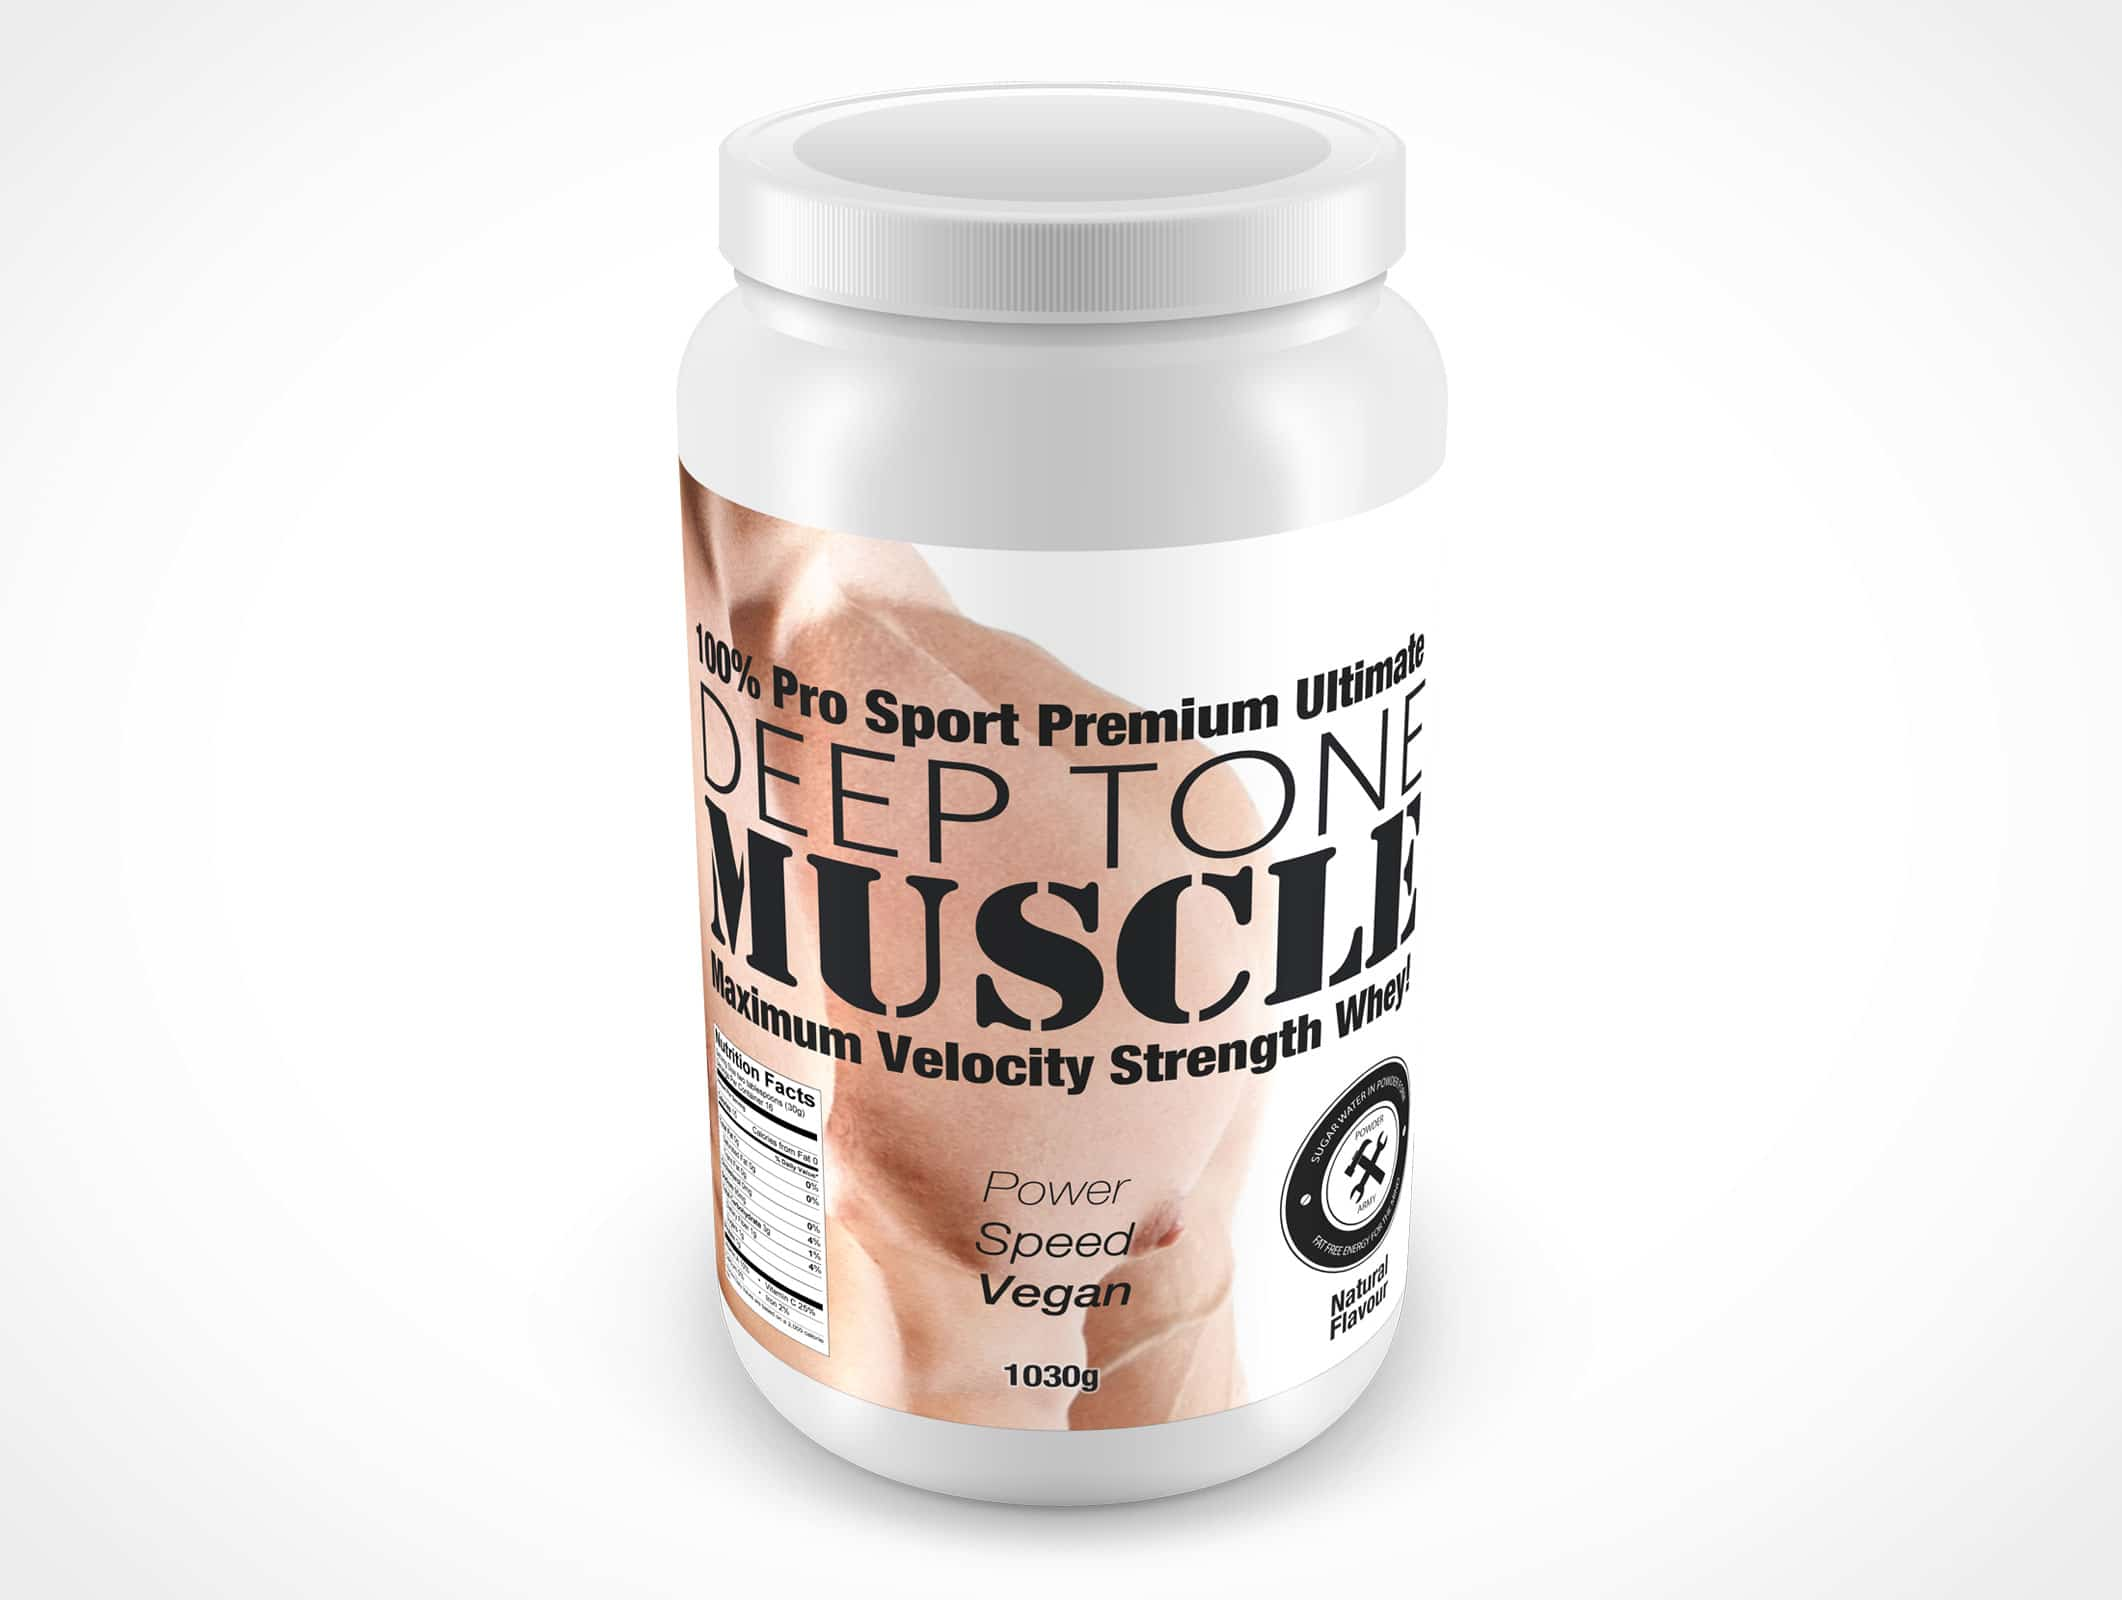 Protein Whey Container